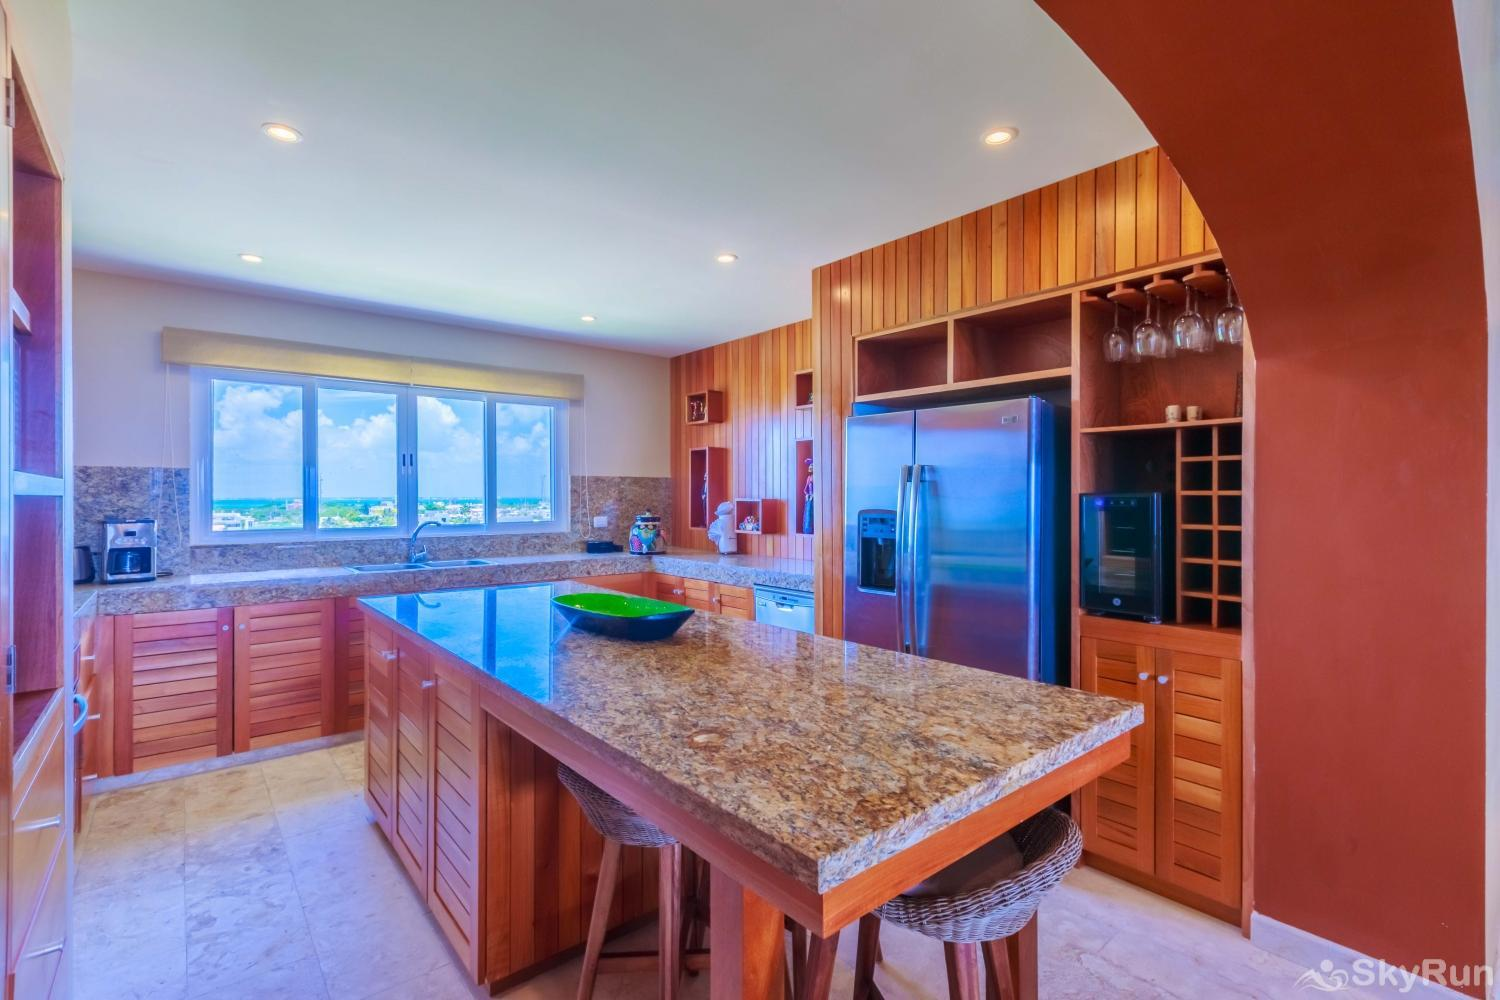 NEW Isla Mujeres Oceanview luxury 3 BR Villa Prepare breakfast, lunch or dinner in your spacious fully equipped kitchen.